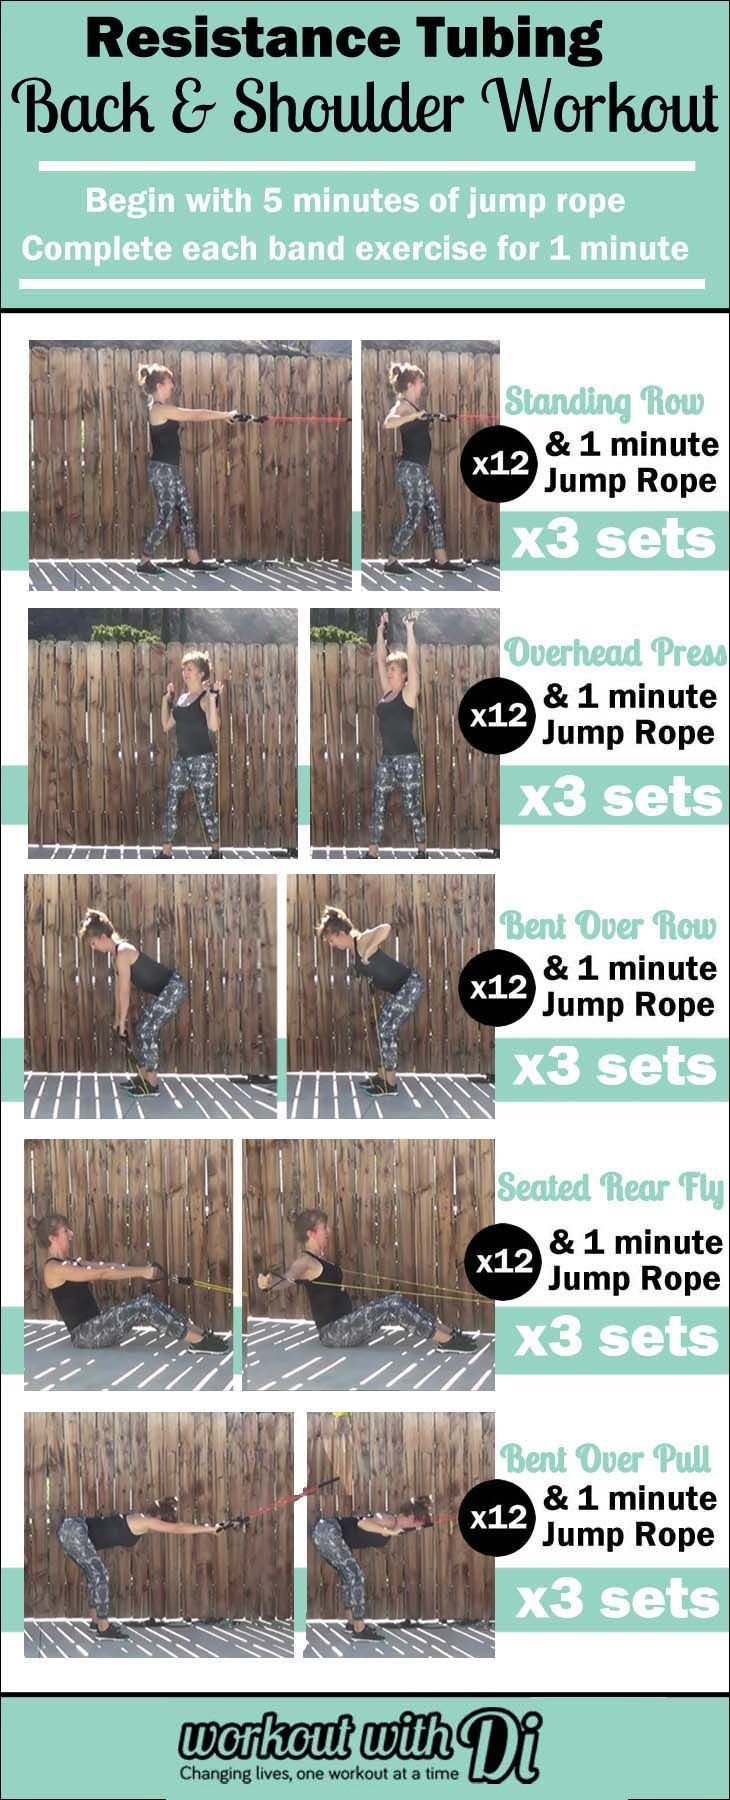 Resistance tubing workout for arms, back and shoulders. Sculpt a toned upper body with this at home workout